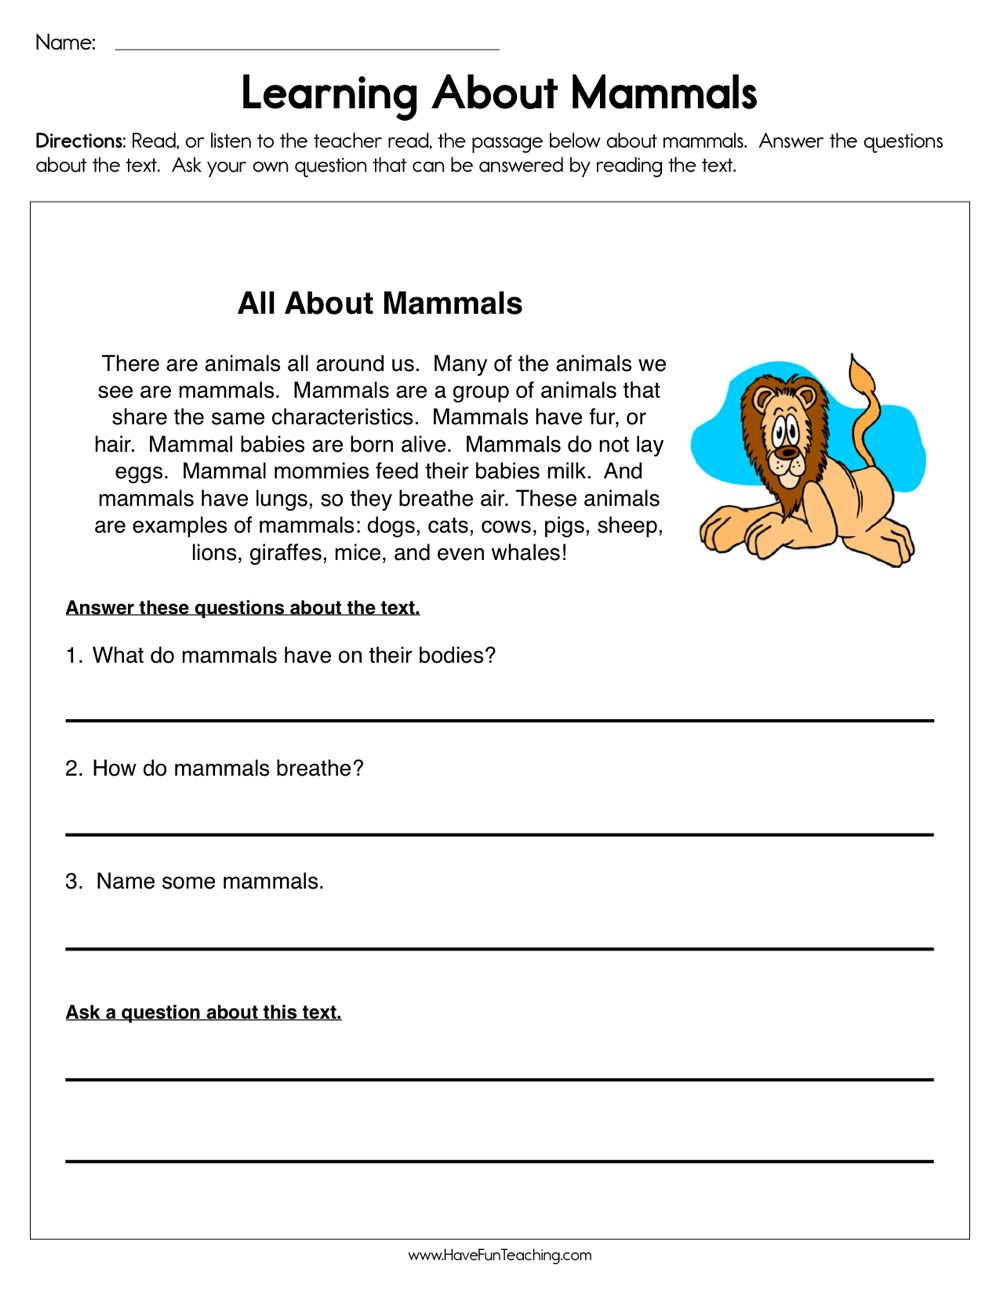 Learning about Mammals Worksheet   Kindergarten worksheets [ 1294 x 1000 Pixel ]